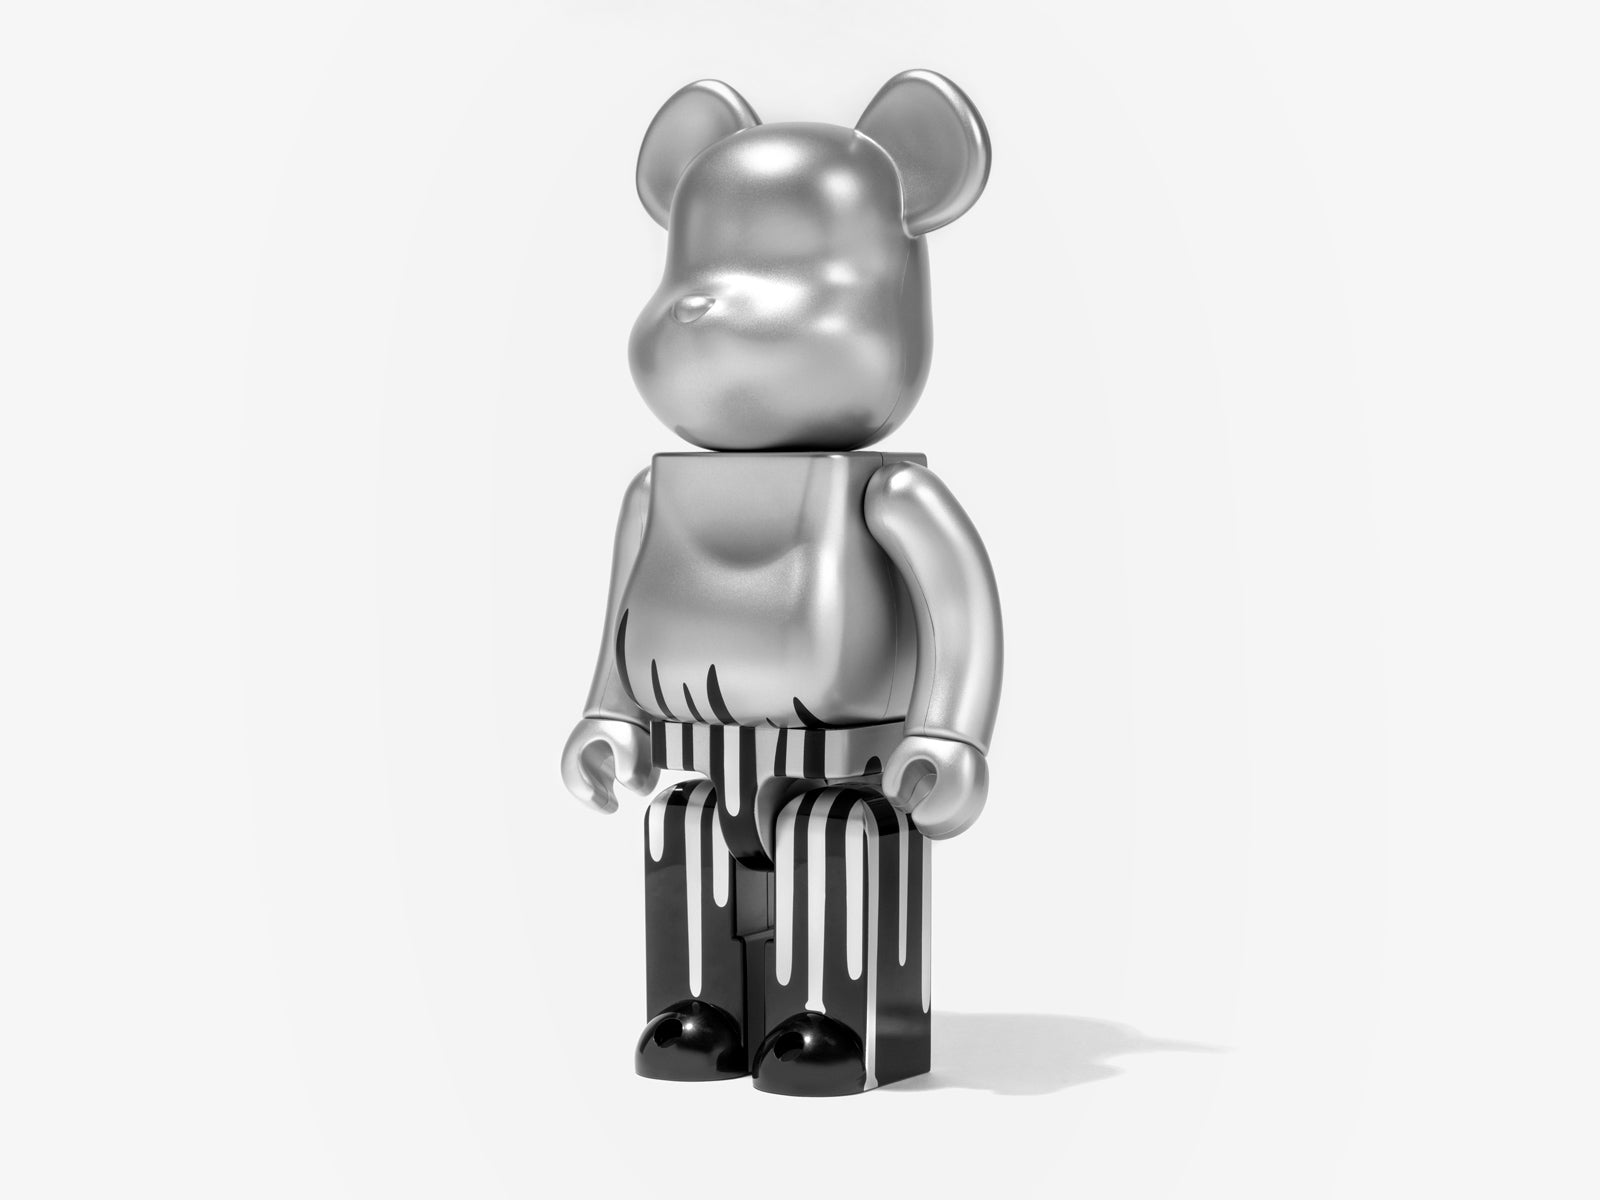 Bearbrick_3quarter_1600vh-1